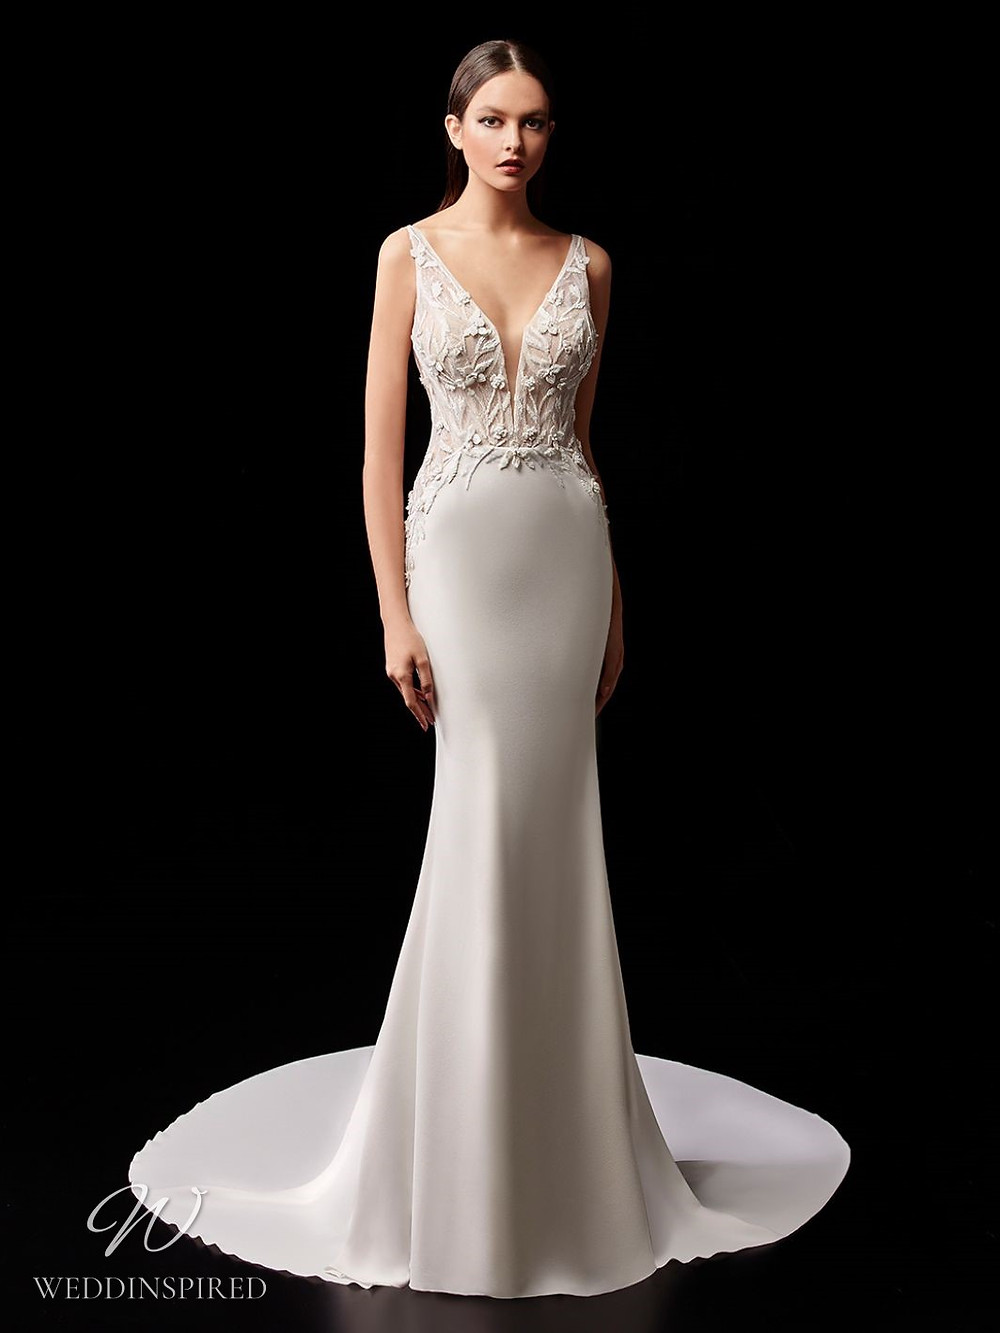 An Enzoani lace and silk mermaid wedding dress with straps and a train